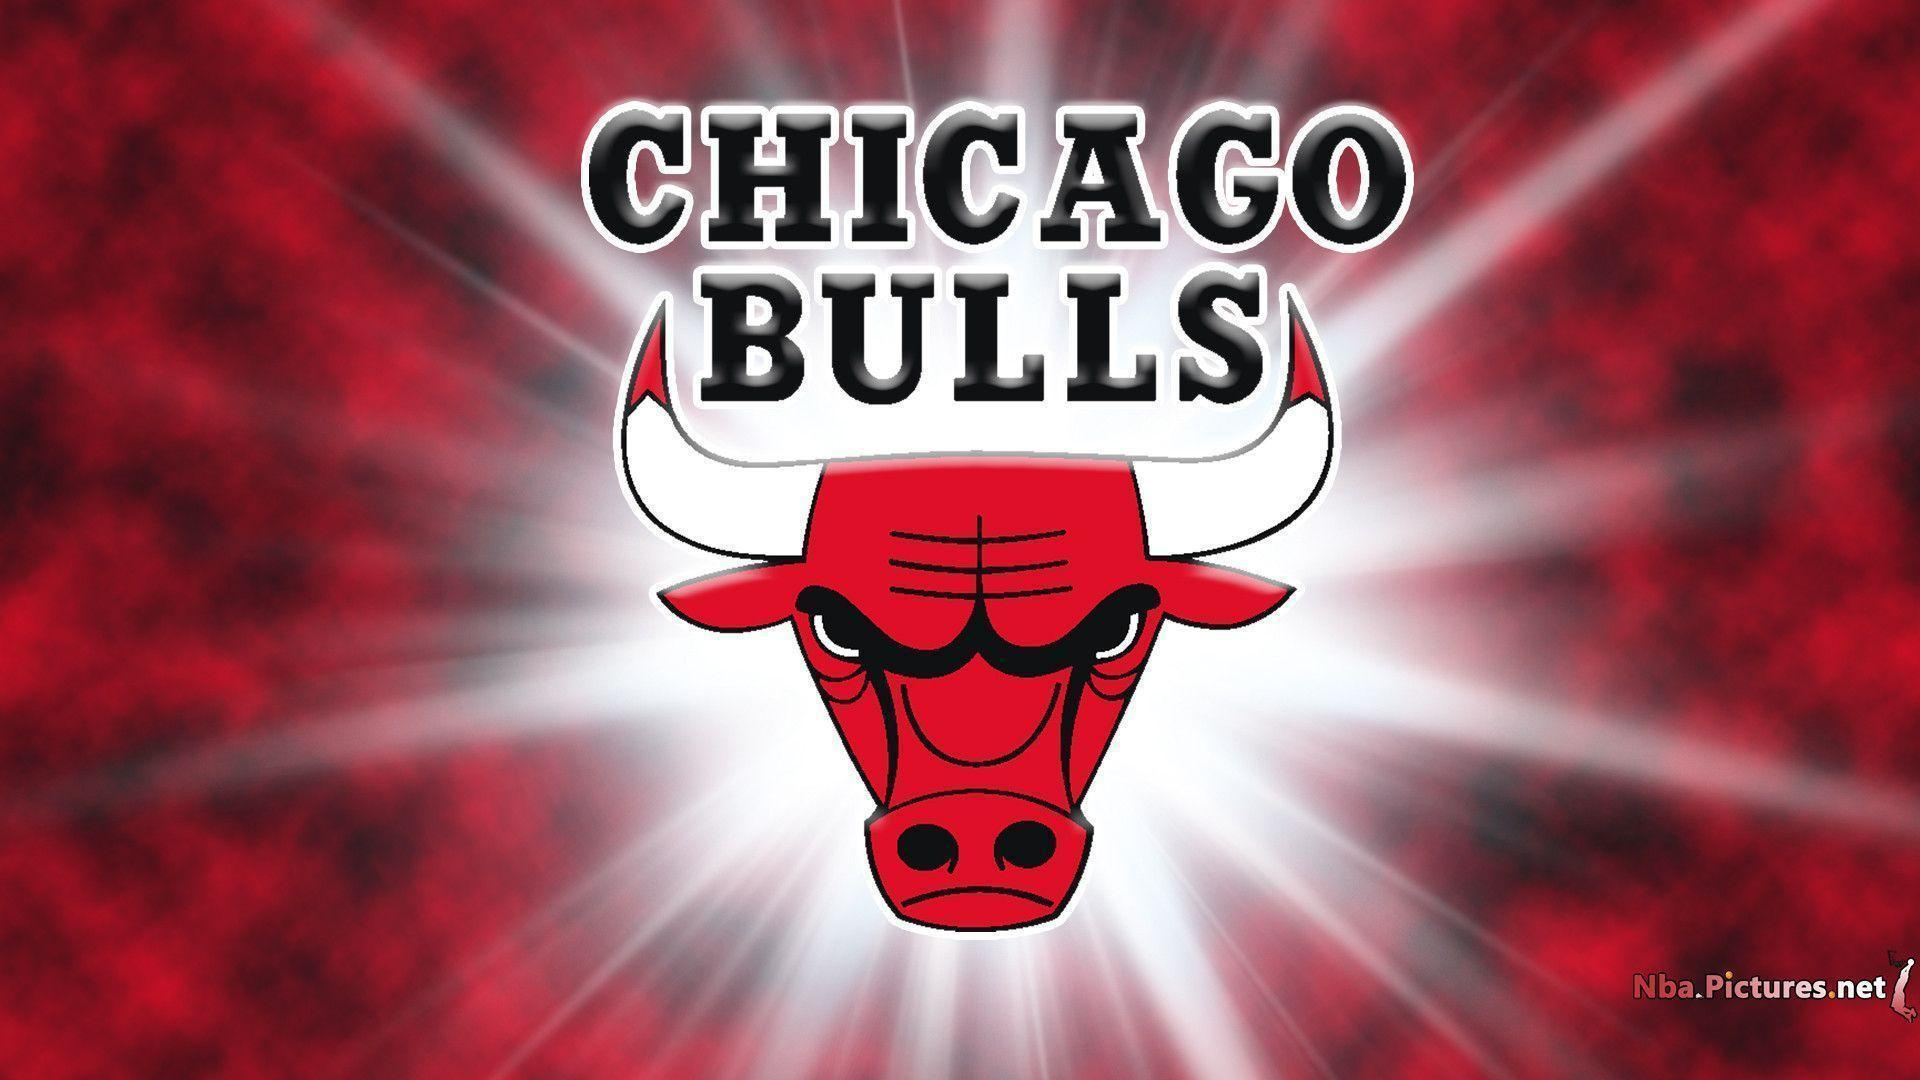 Images For > Chicago Bulls Wallpaper Hd 2014